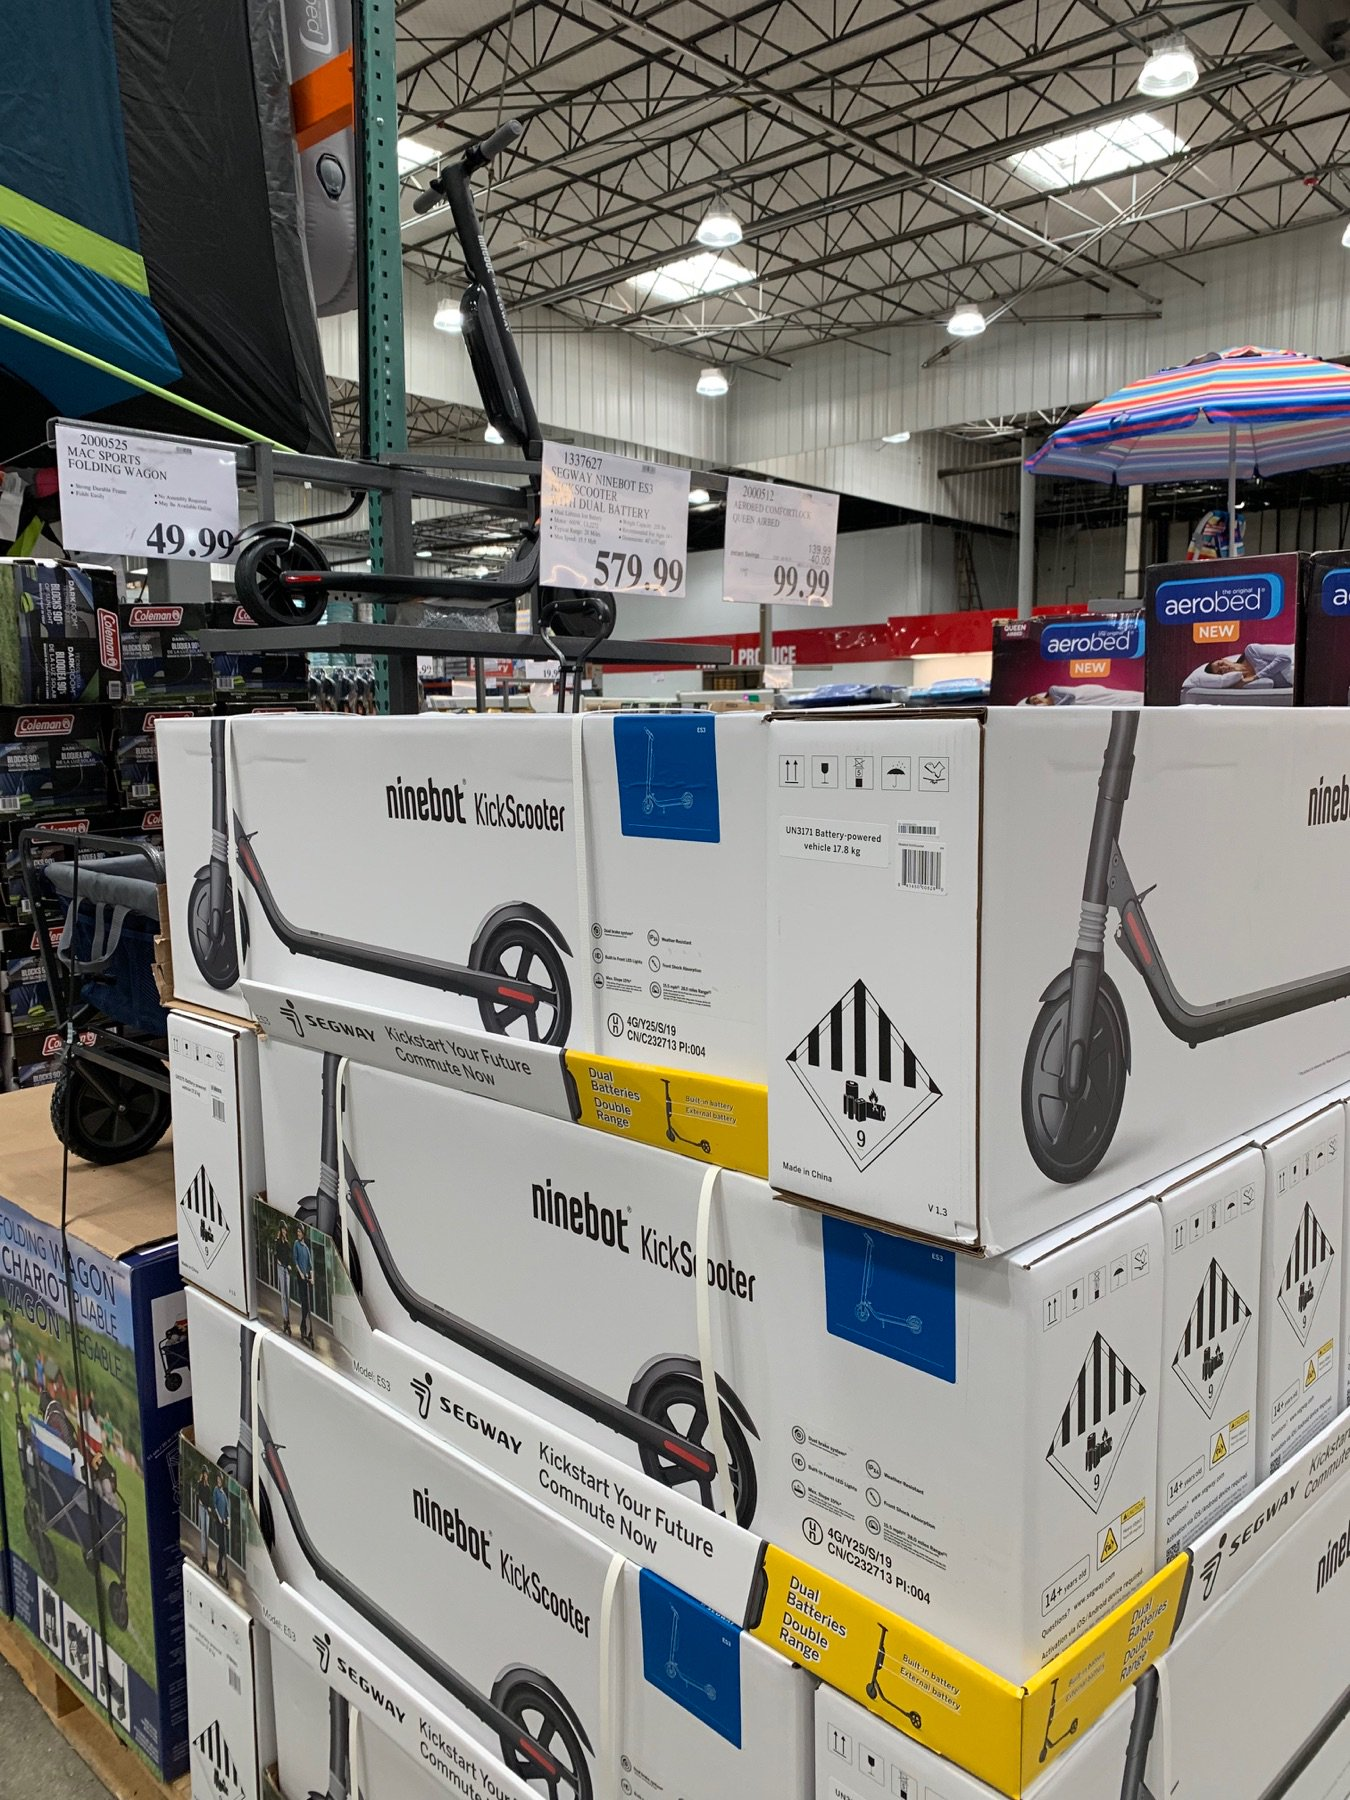 Horace Dediu On Twitter Ninebot Es3 Scooters With Dual Battery Are 580 At Costco 28 Mi Range 600w 15 5 Mph